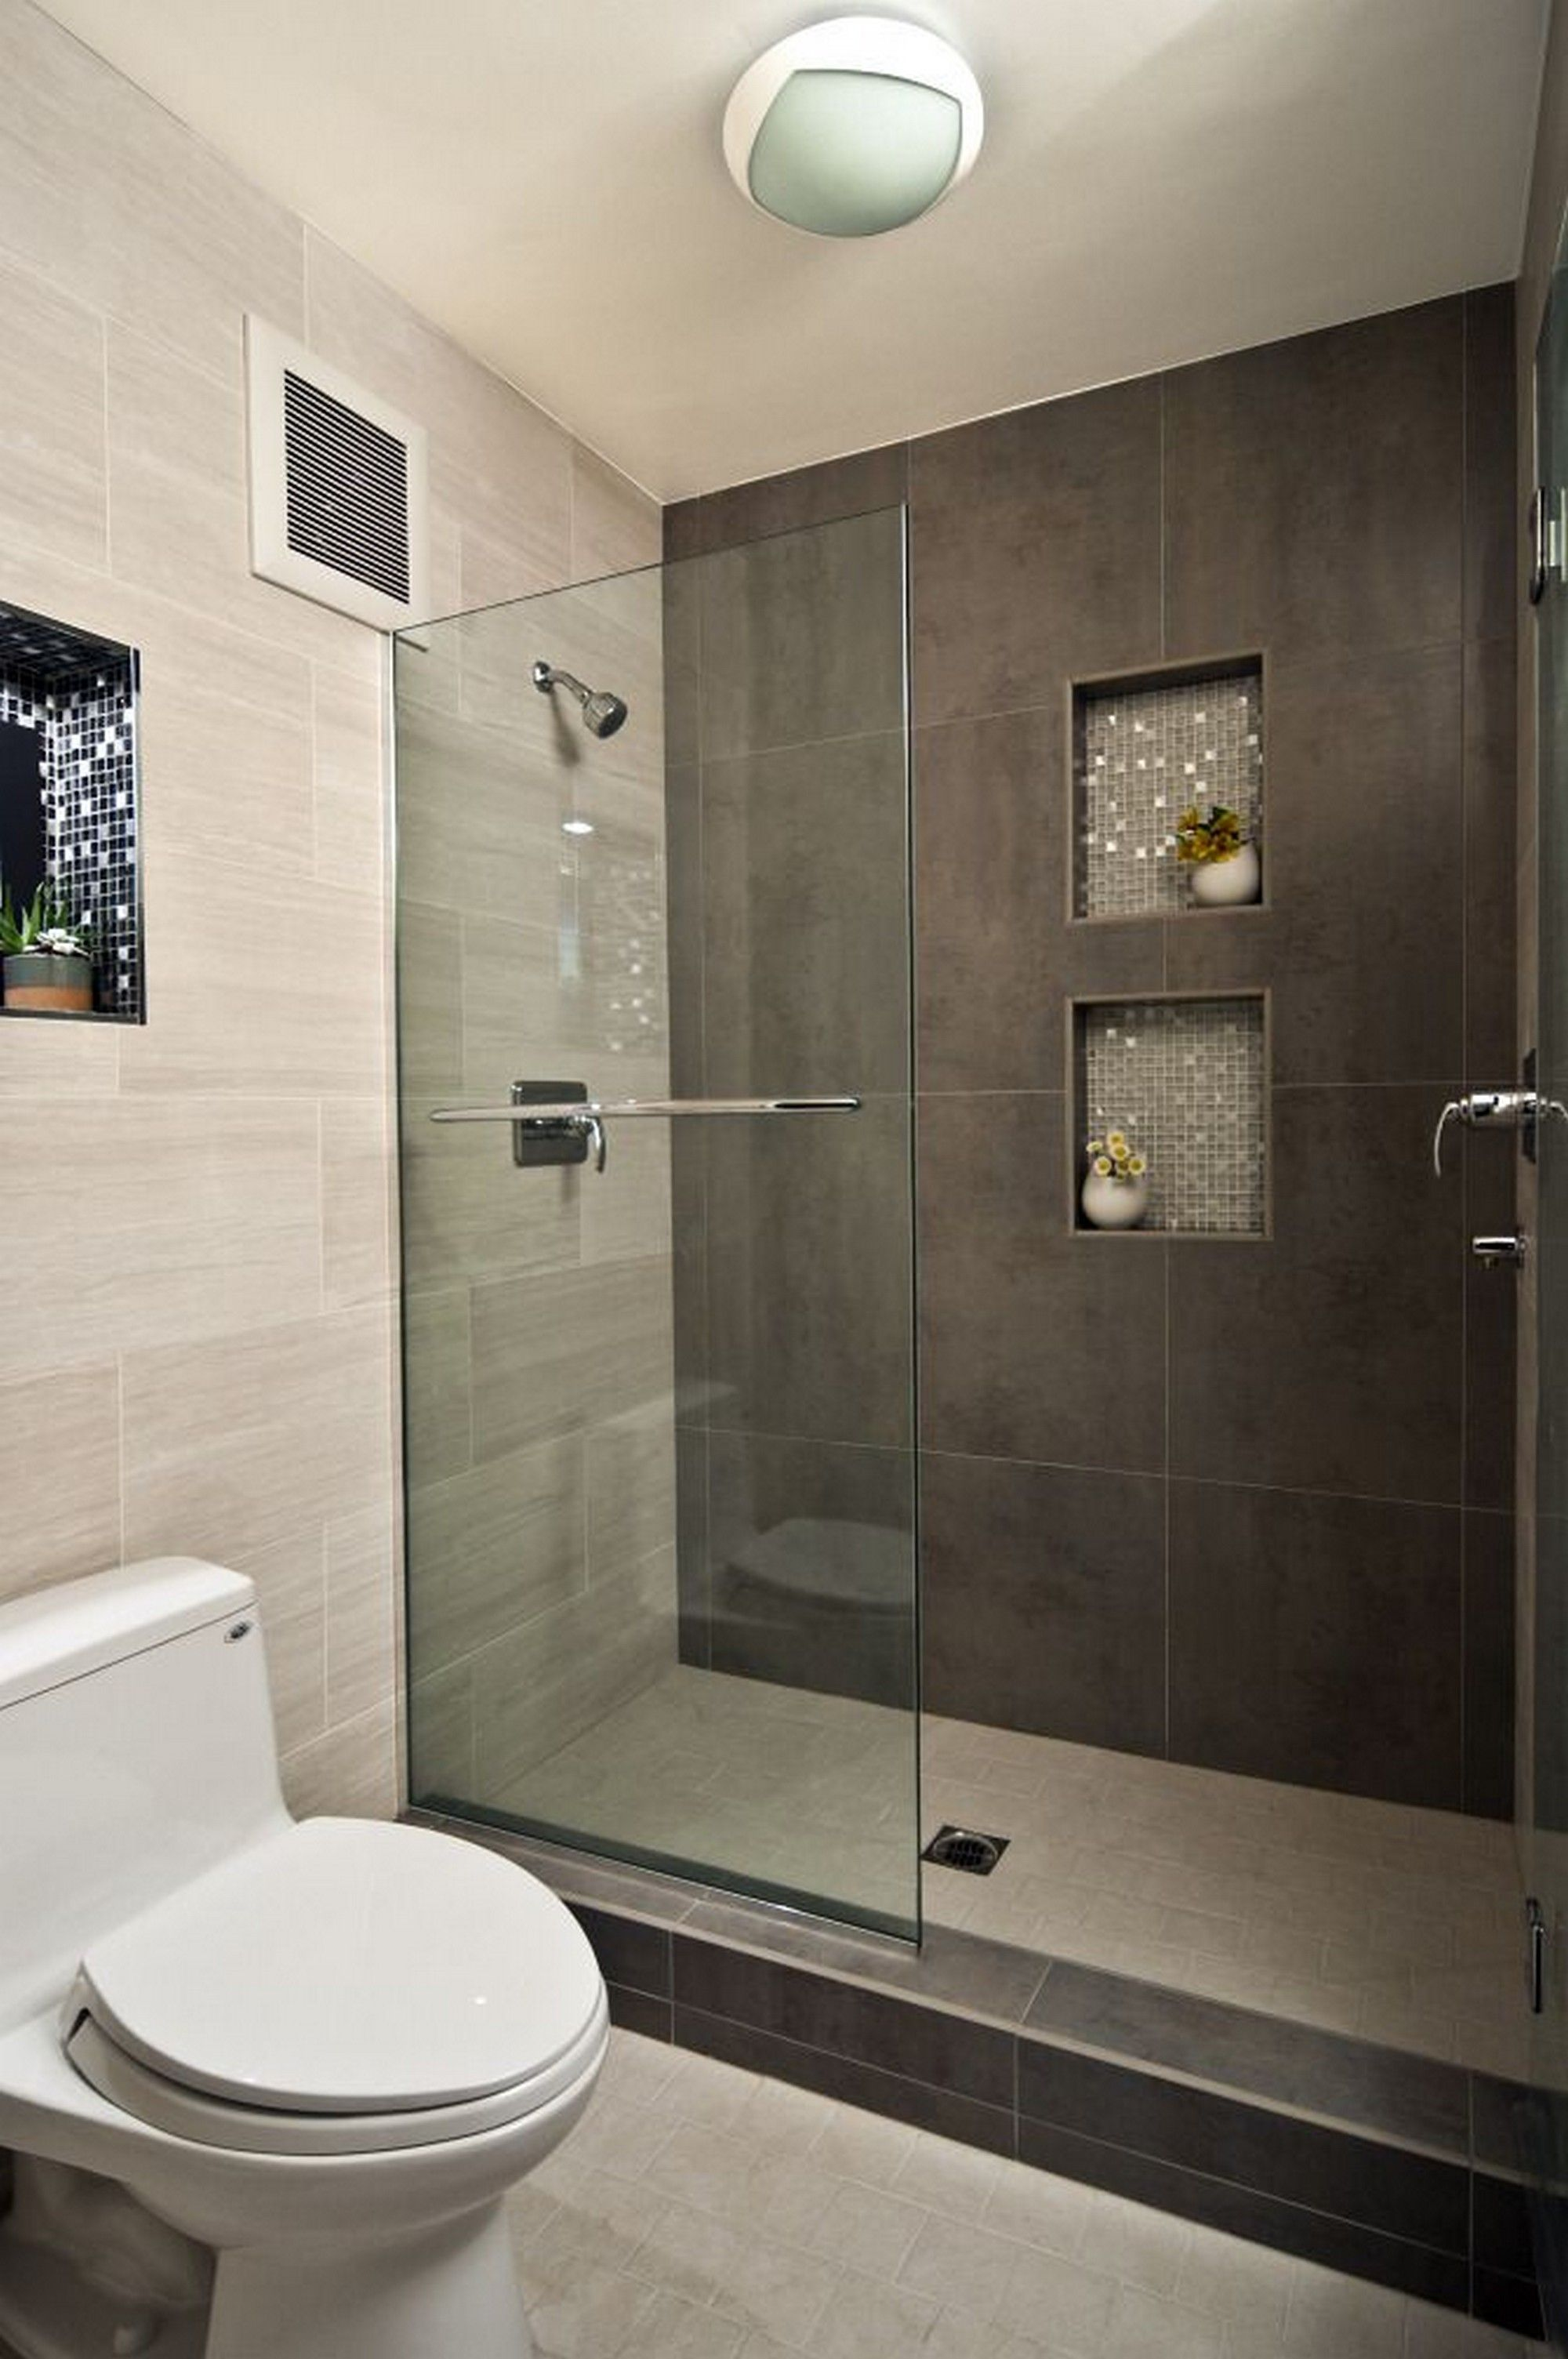 Modern bathroom design ideas with walk in shower small for Bathroom styles and designs